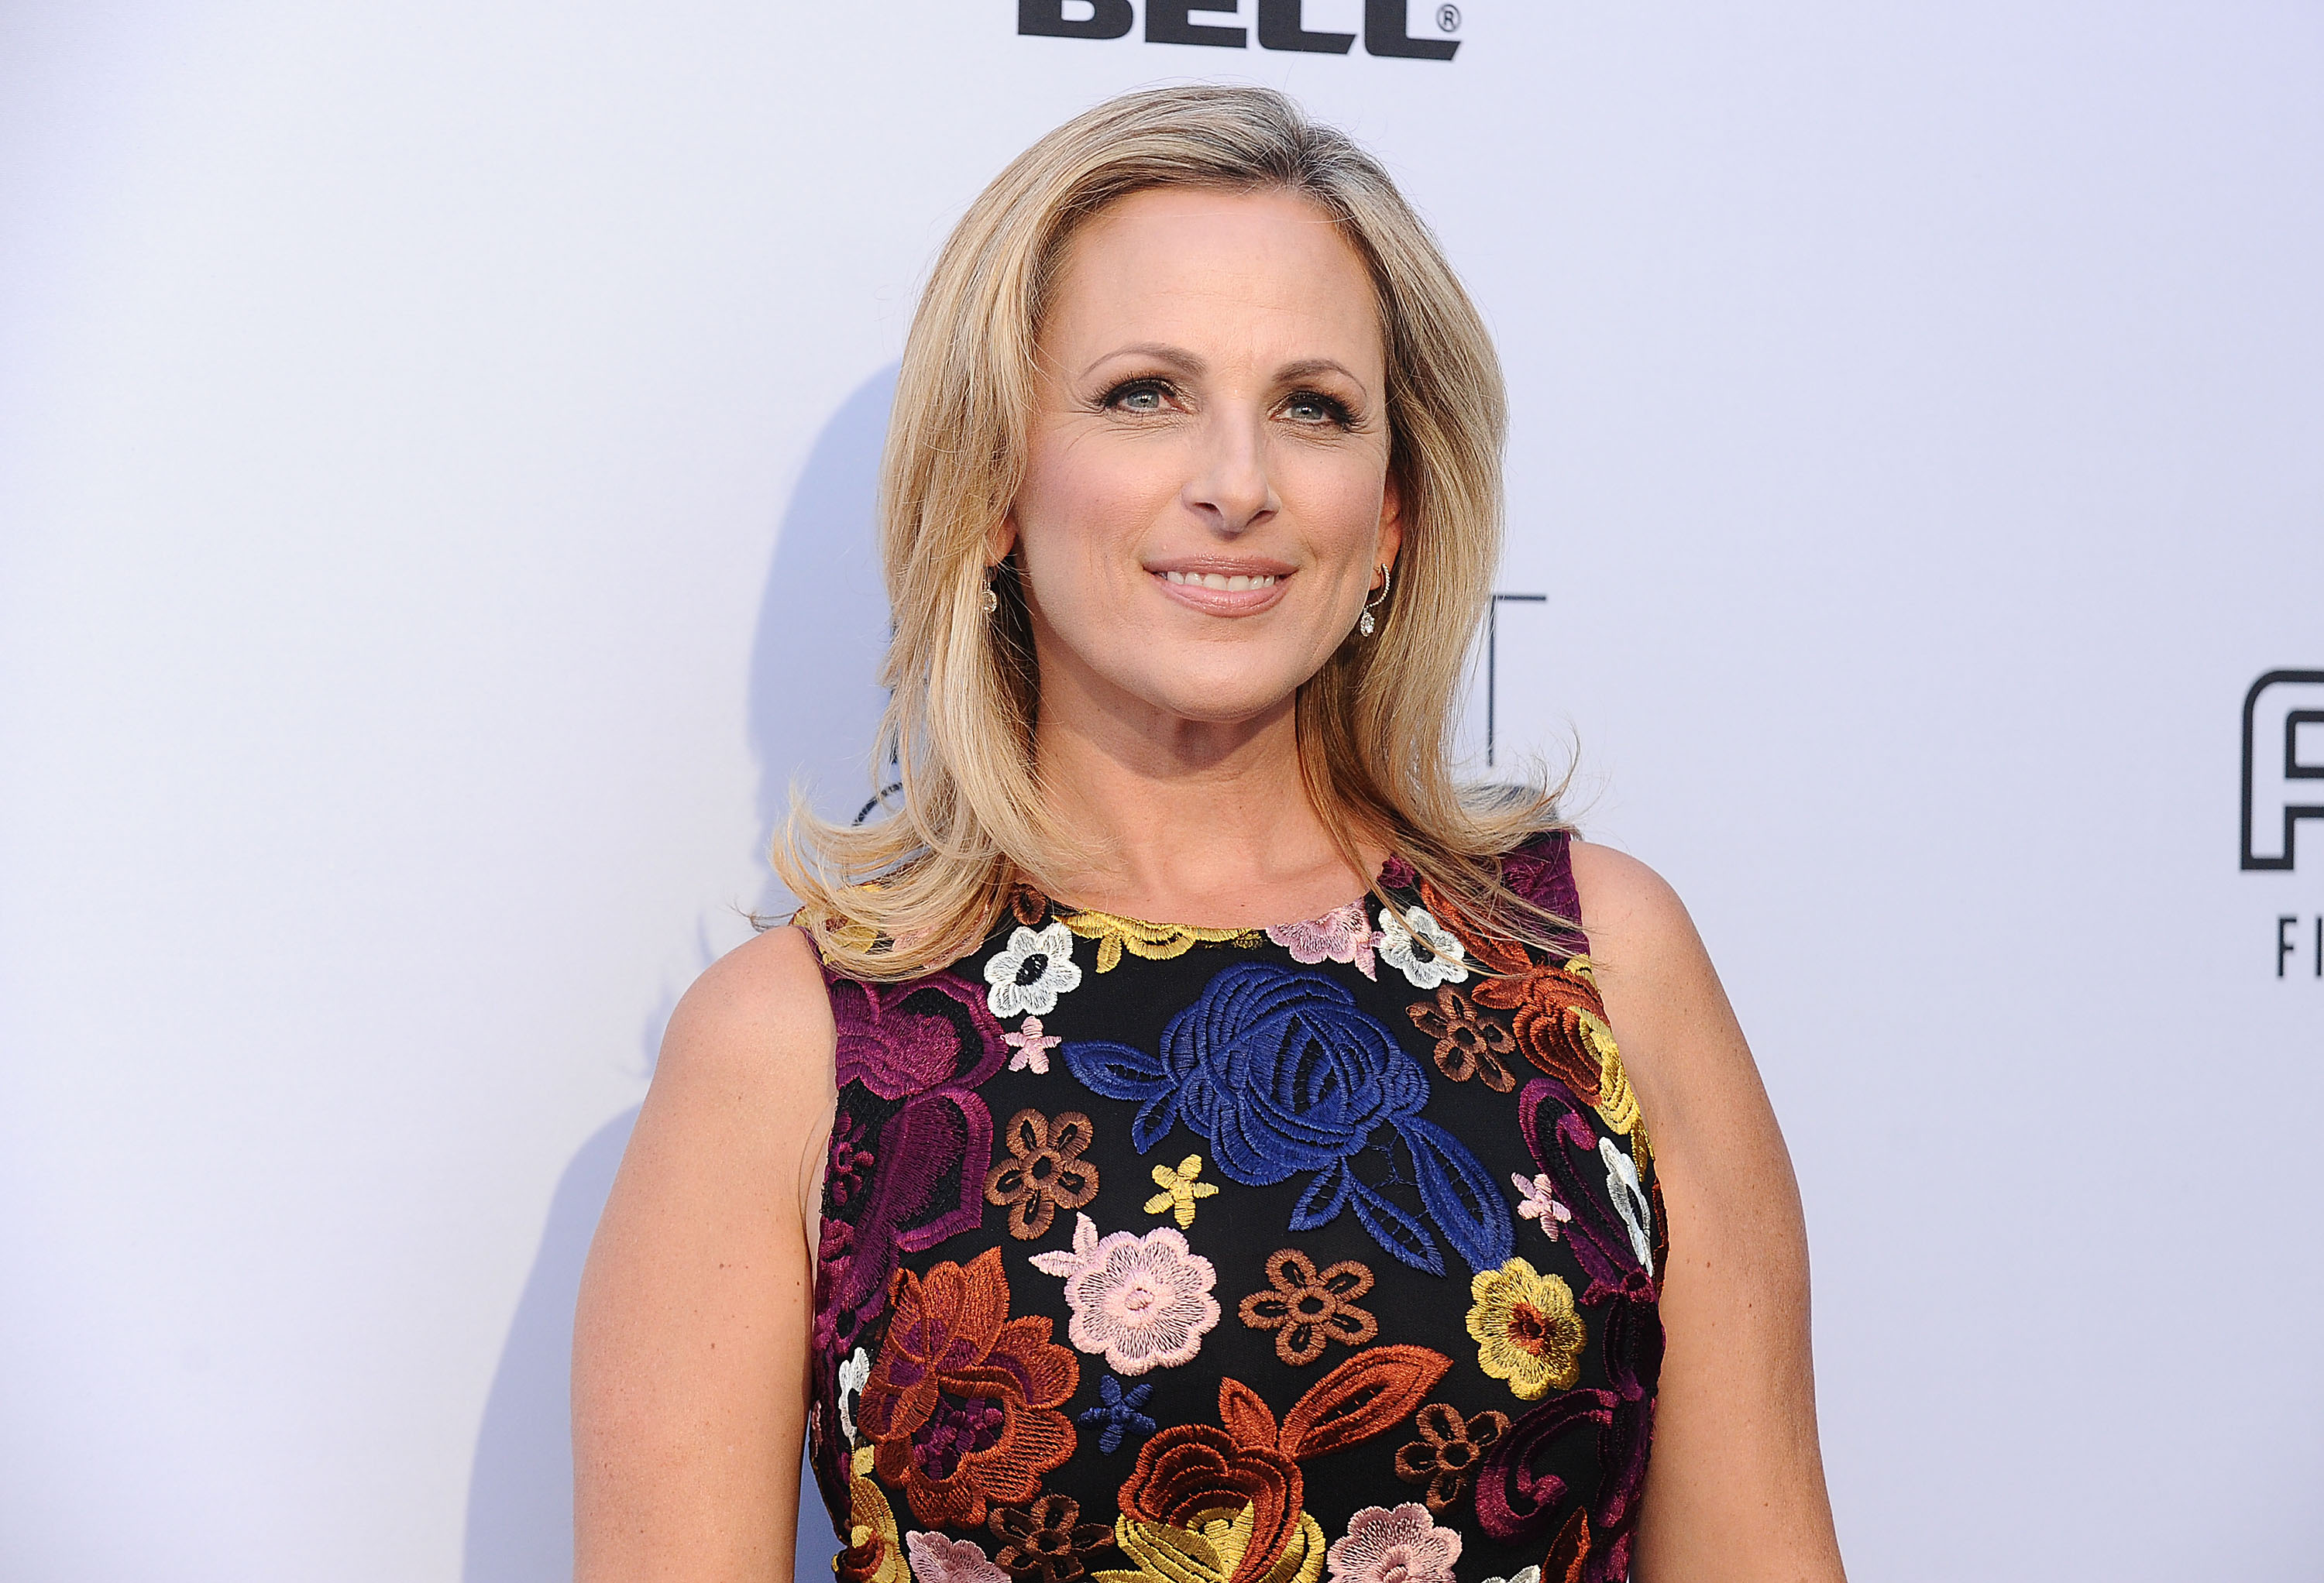 Actress Marlee Matlin attends the Comedy Central Roast of Rob Lowe at Sony Studios on Aug. 27, 2016 in Los Angeles, California.